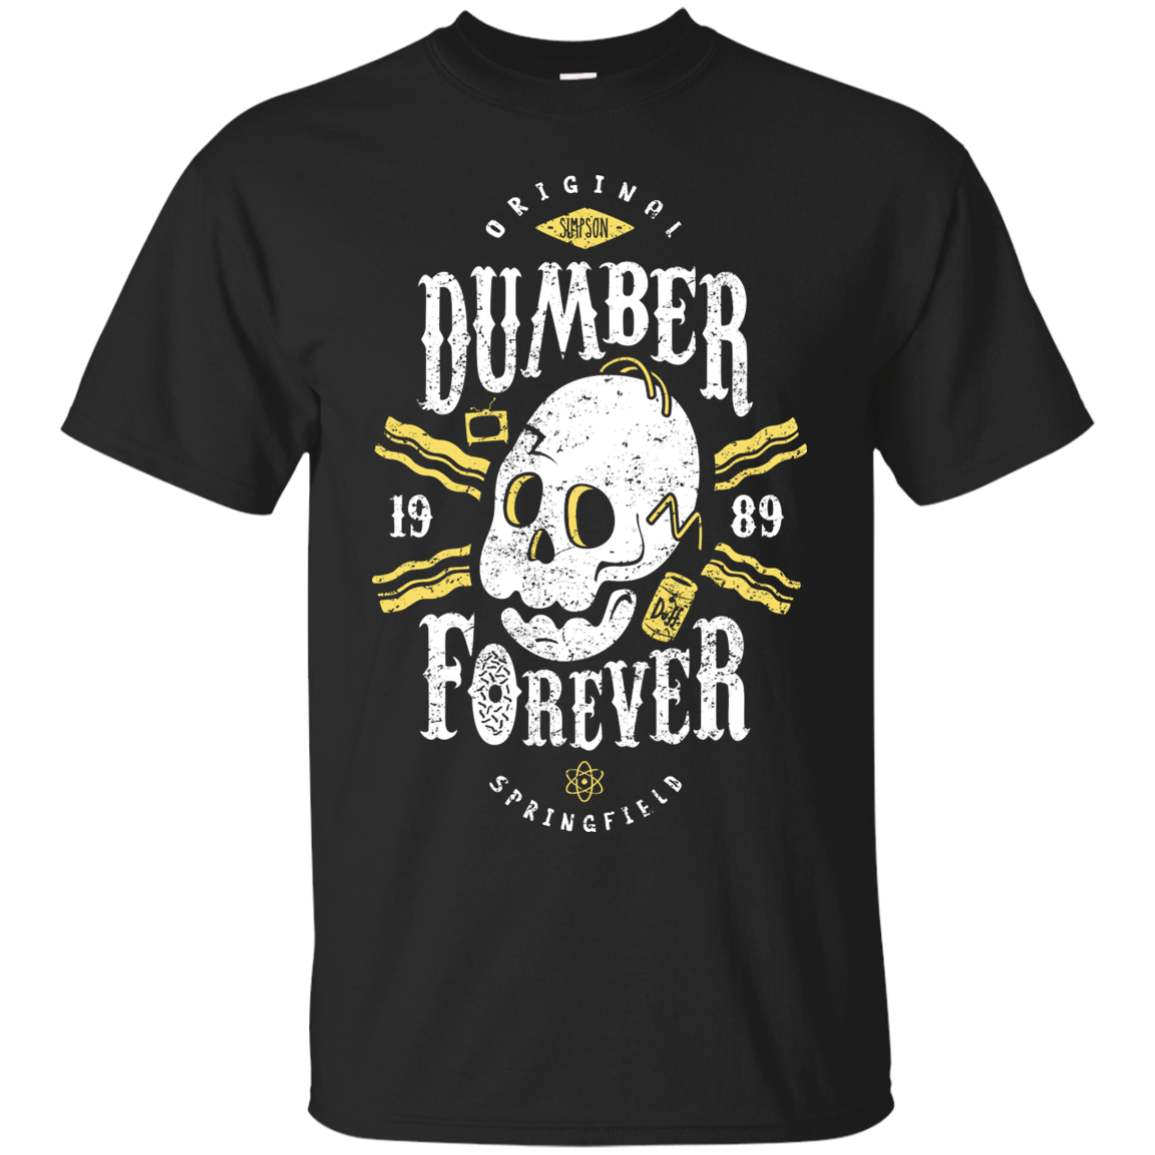 Dumber Forever Matching Family T-Shirts